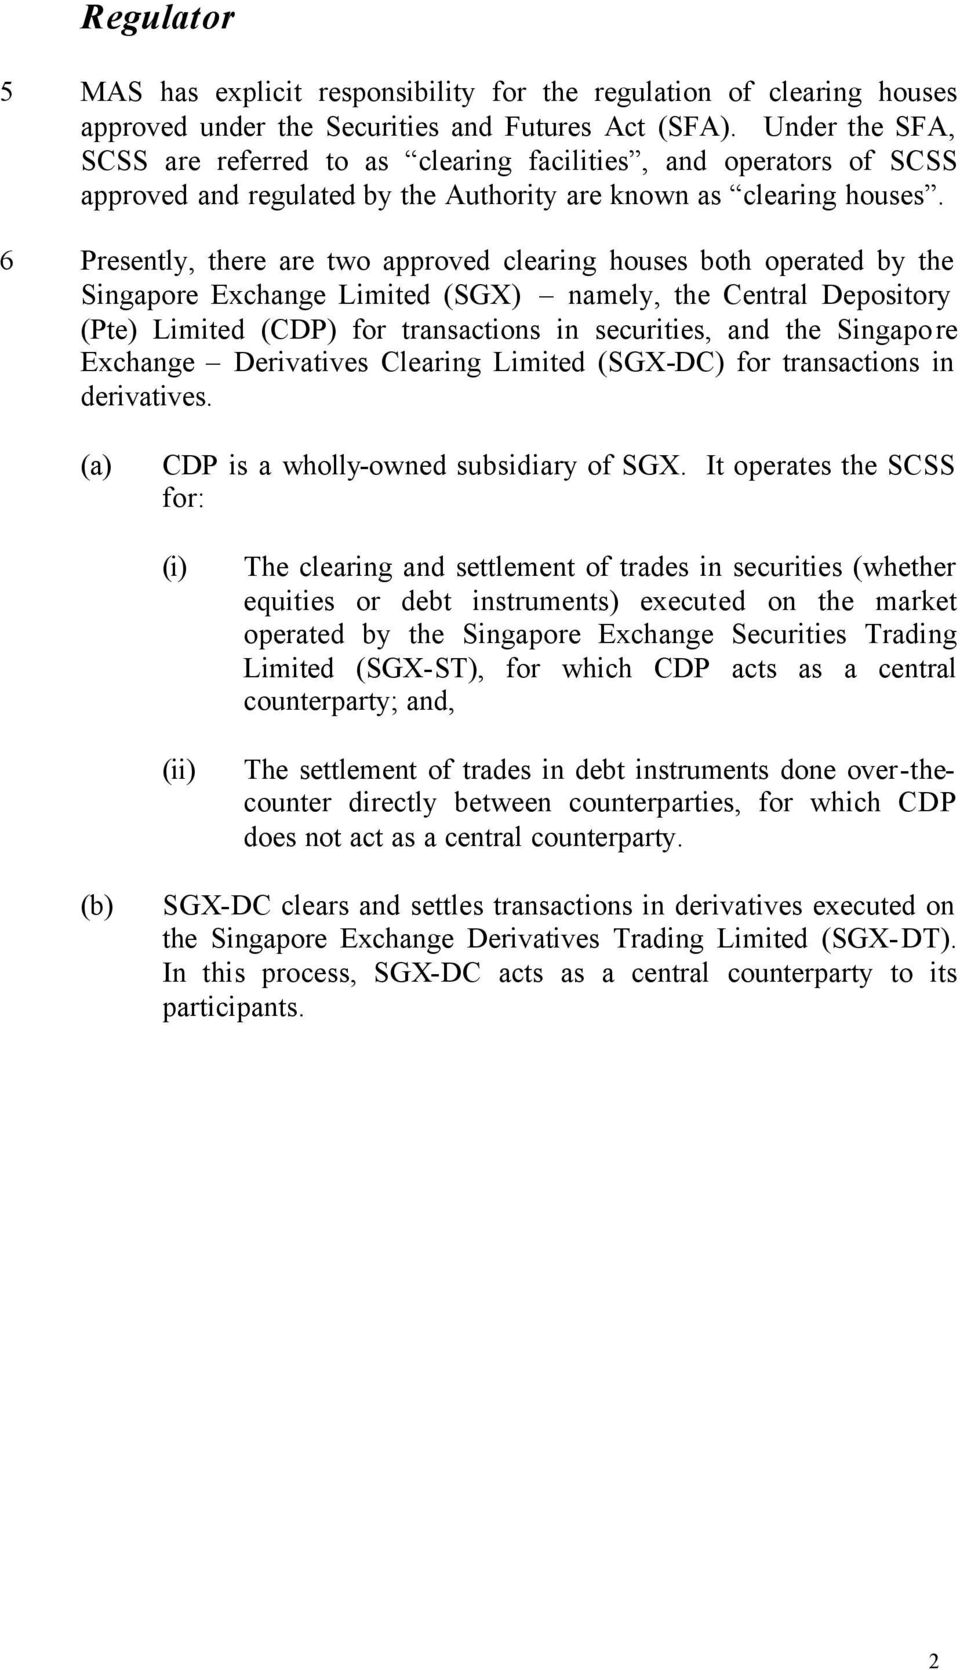 6 Presently, there are two approved clearing houses both operated by the Singapore Exchange Limited (SGX) namely, the Central Depository (Pte) Limited (CDP) for transactions in securities, and the